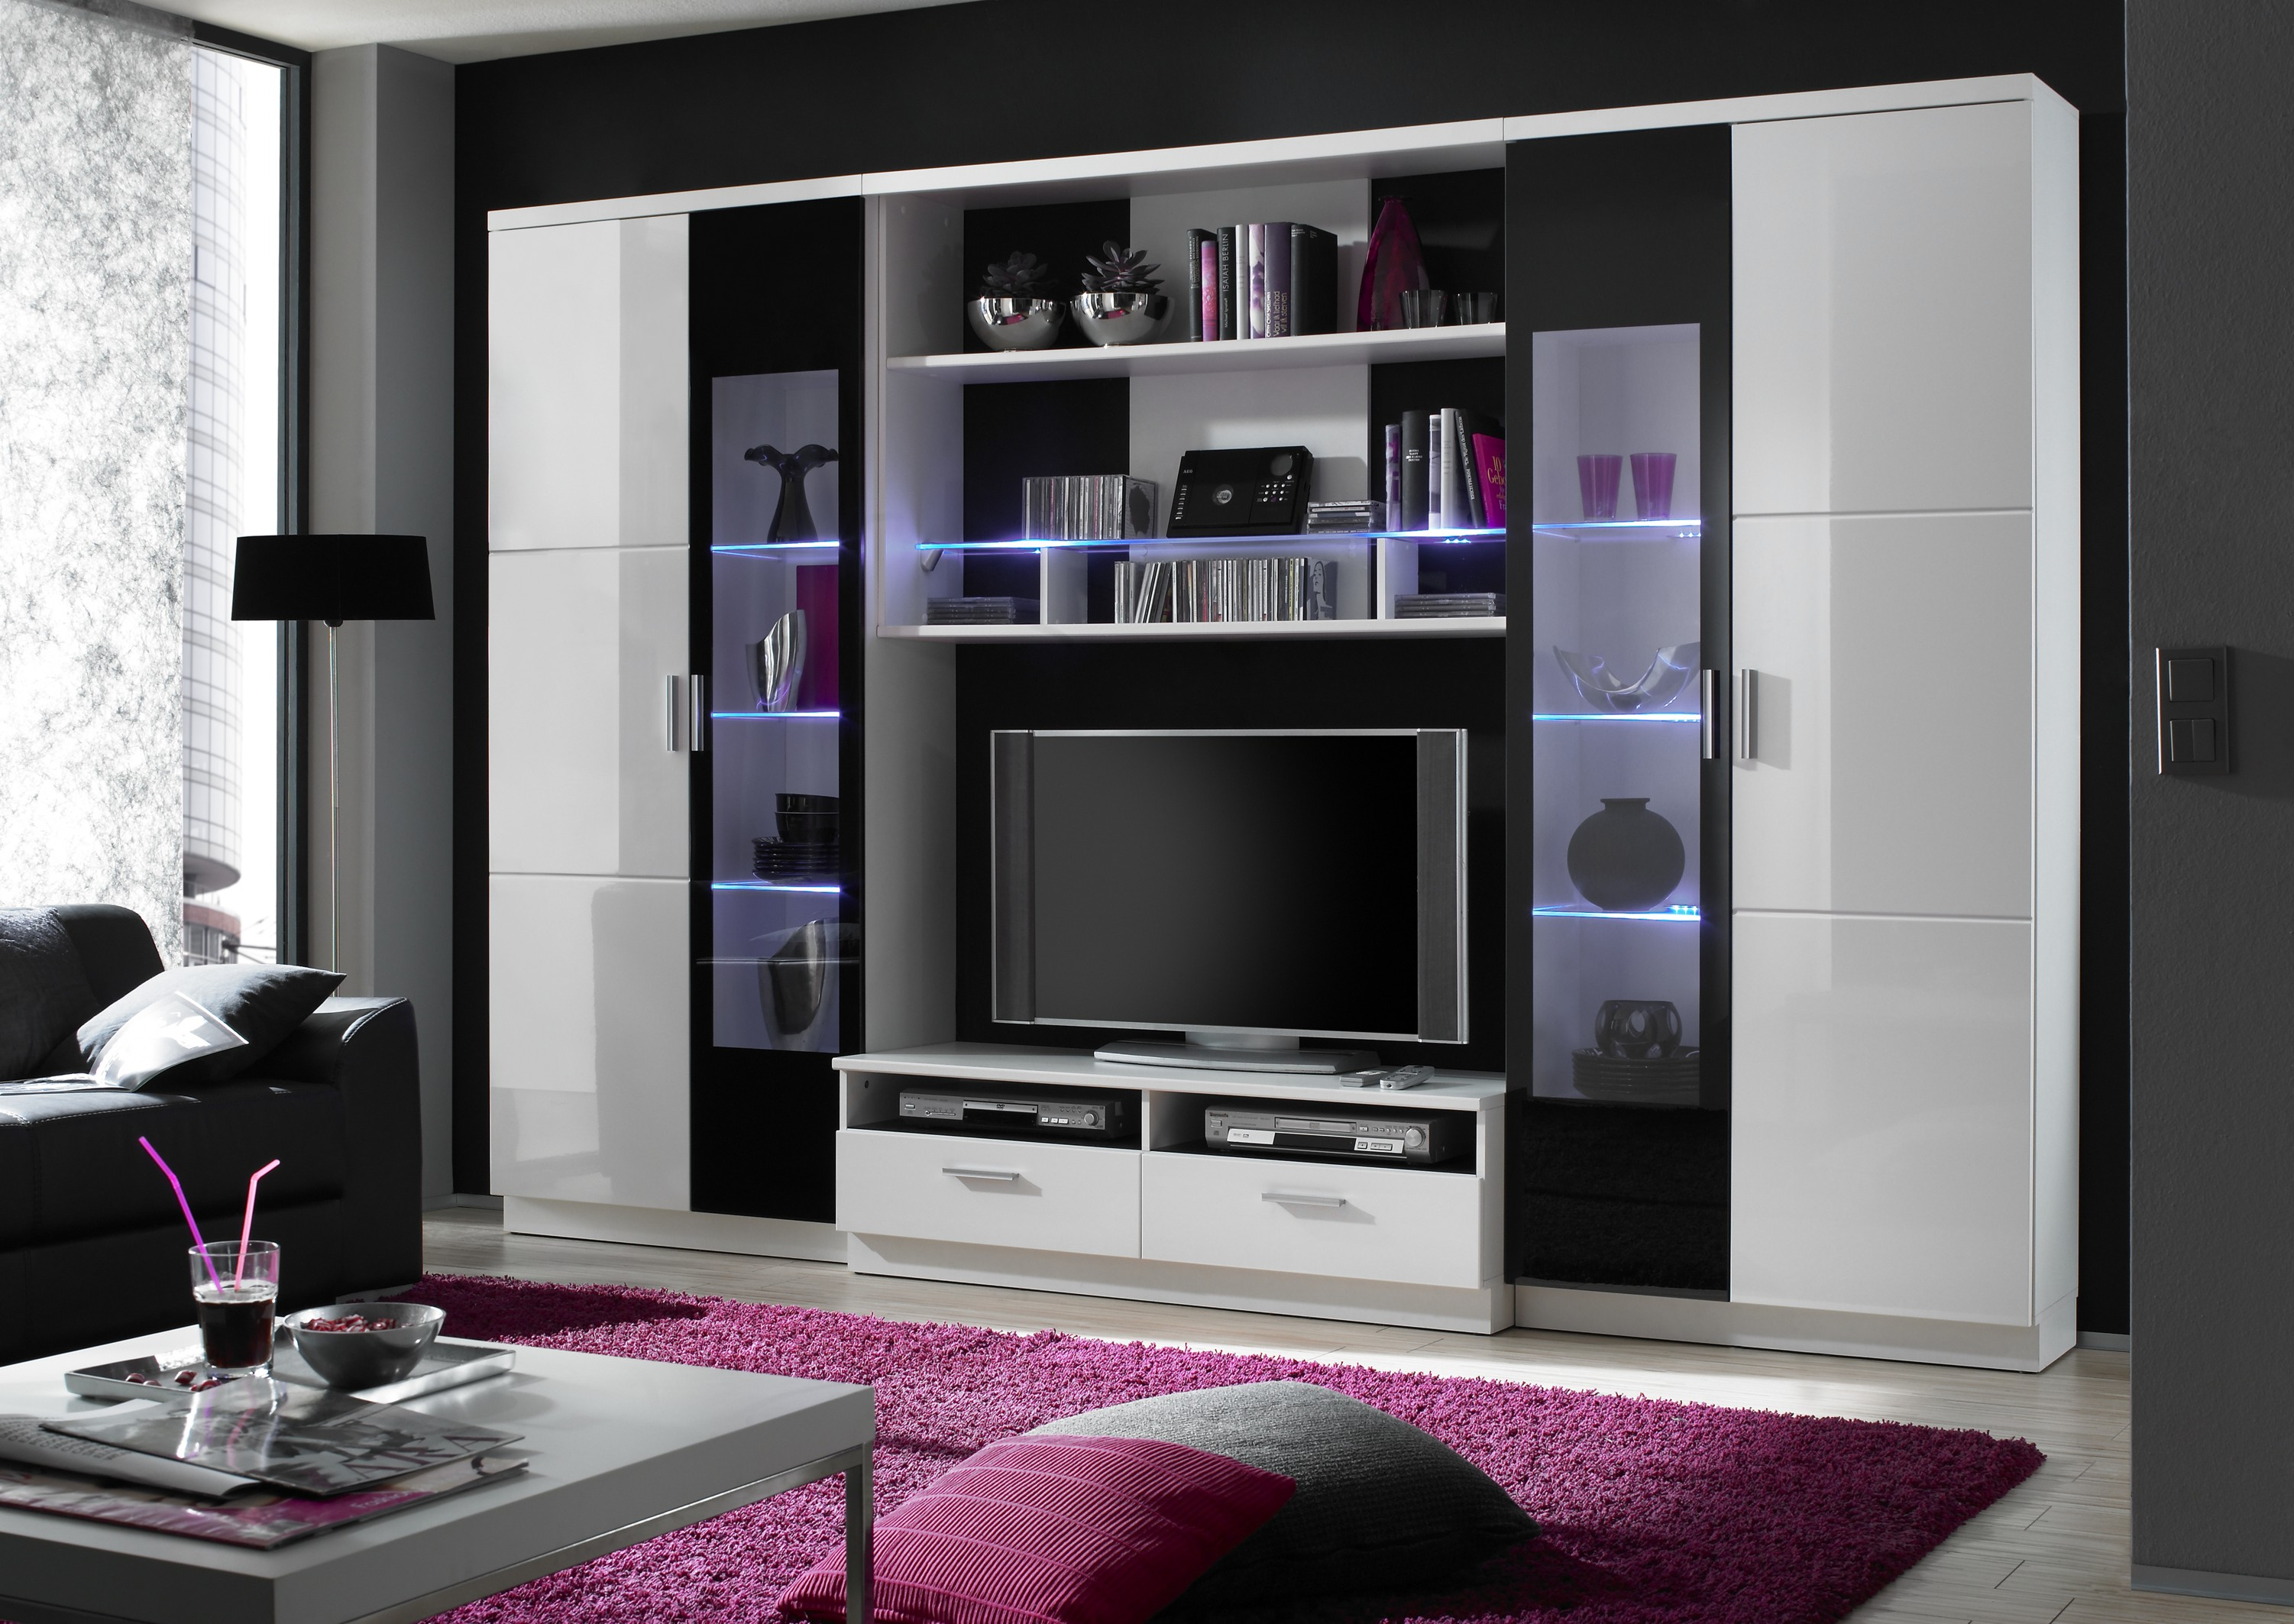 sansi hochglanz wohnwand wei schwarz. Black Bedroom Furniture Sets. Home Design Ideas